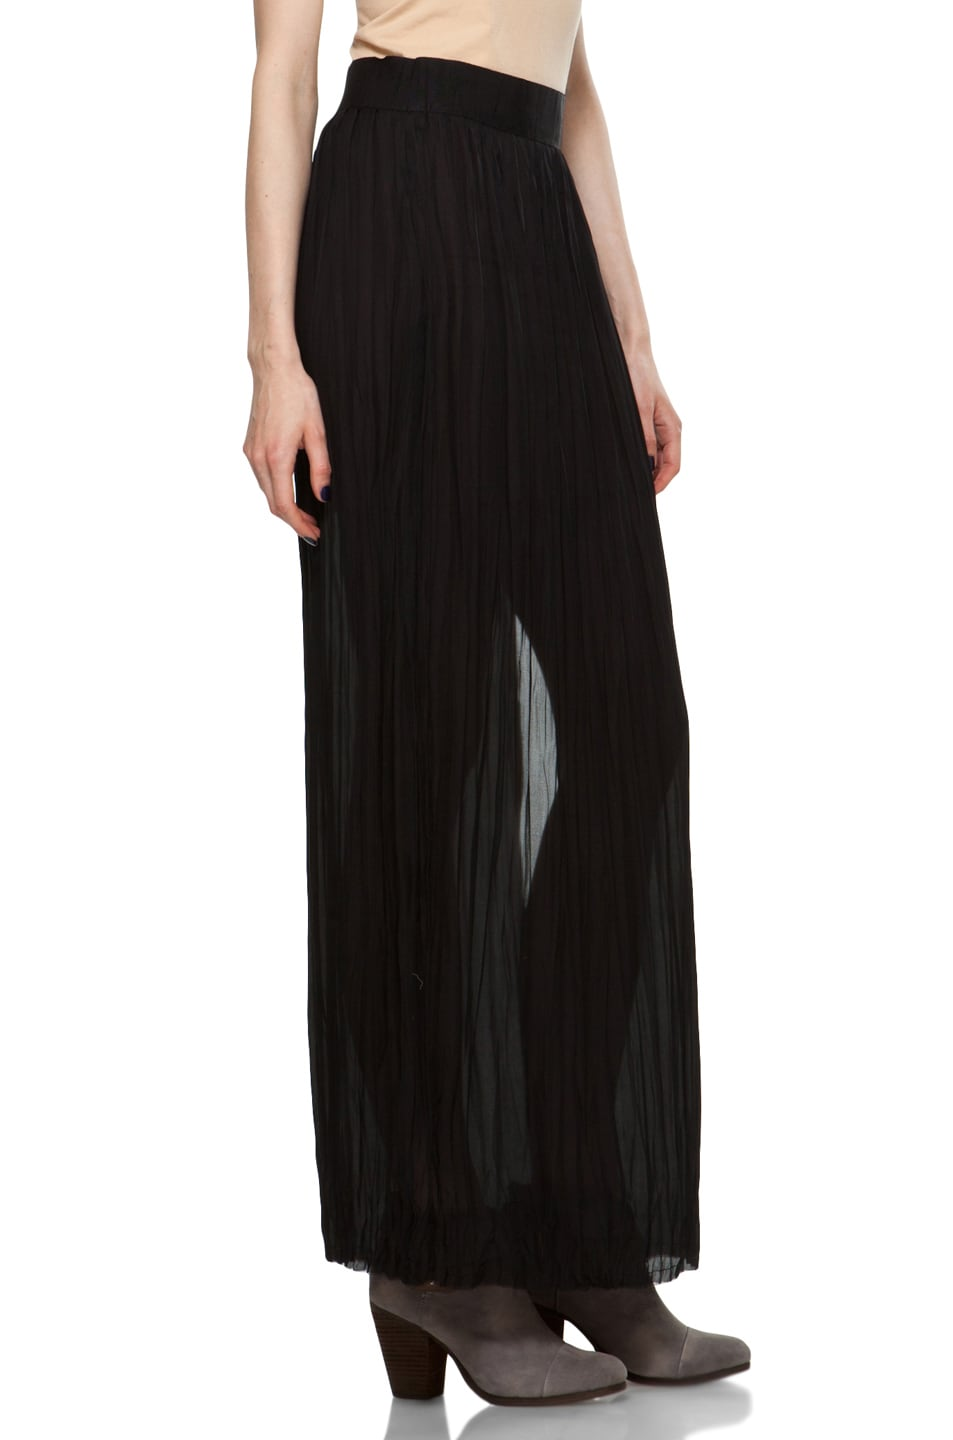 Image 3 of Nili Lotan Wrinkled Skirt in Black